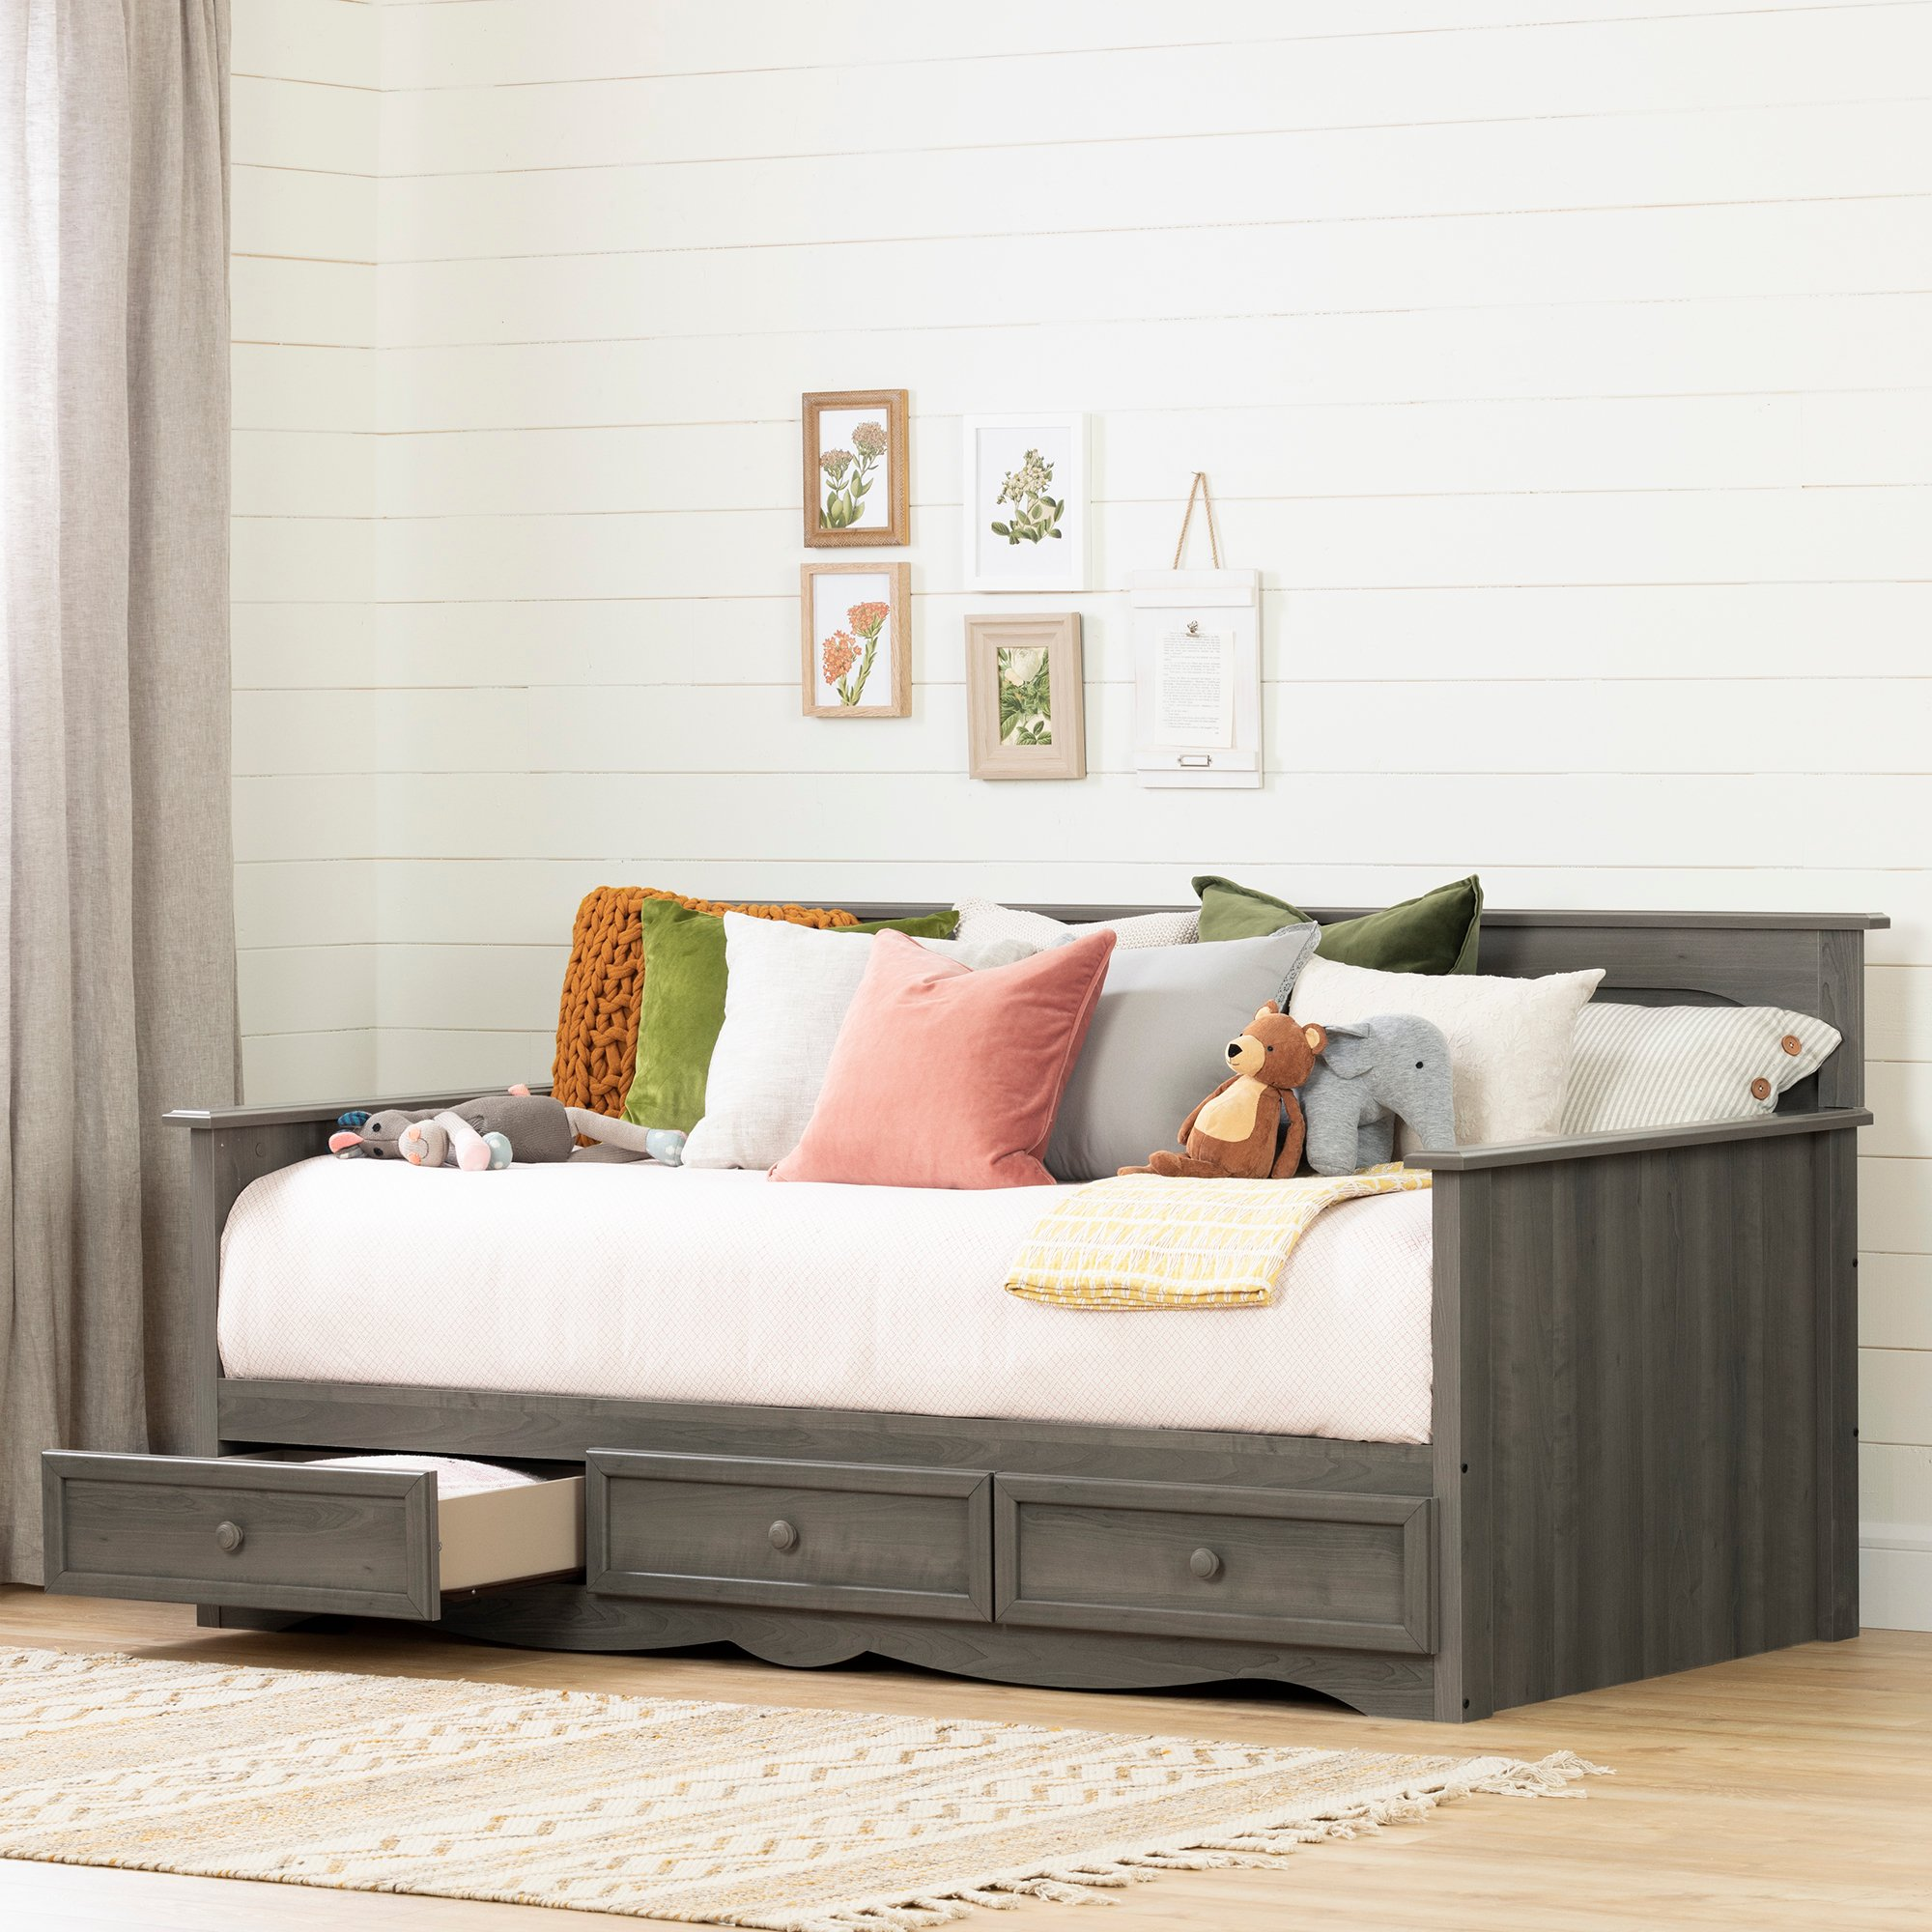 South Shore 11687 Savannah Daybed with Storage, Gray